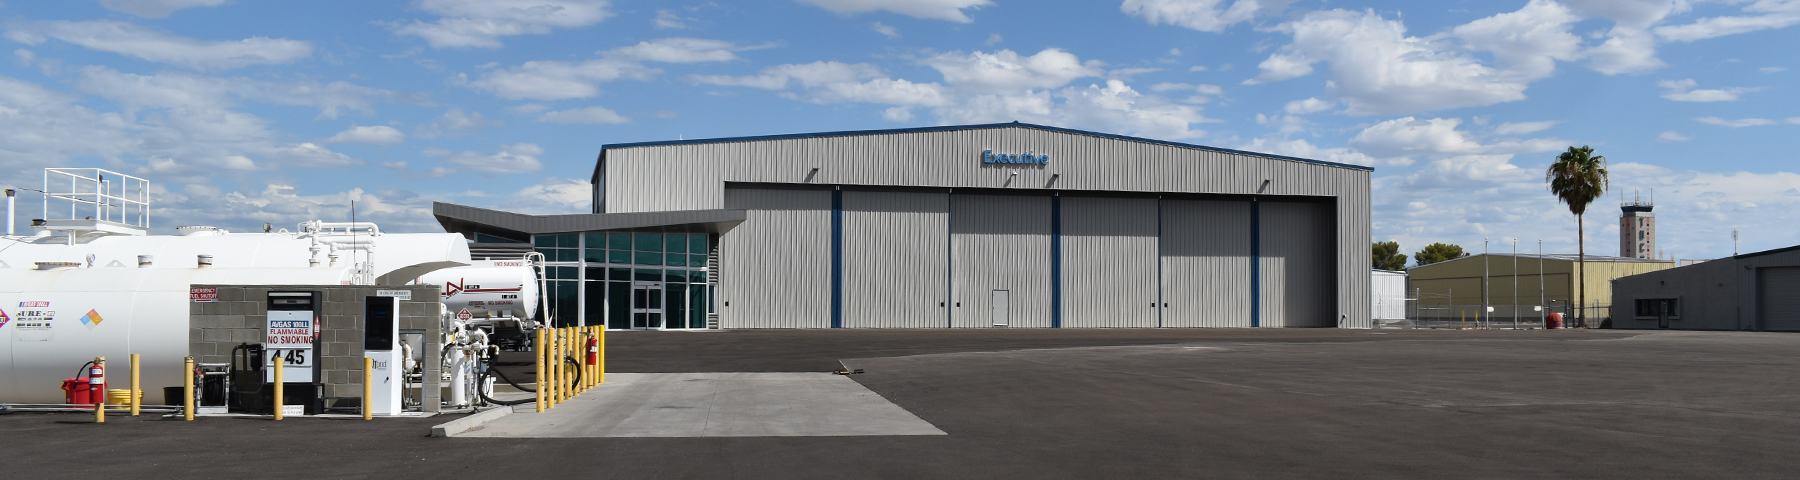 Executive Air Tucson - General Aviation and Private Aviation FBO at Tucson International Airport (KTUS) - Line Service and Aircraft Fuel